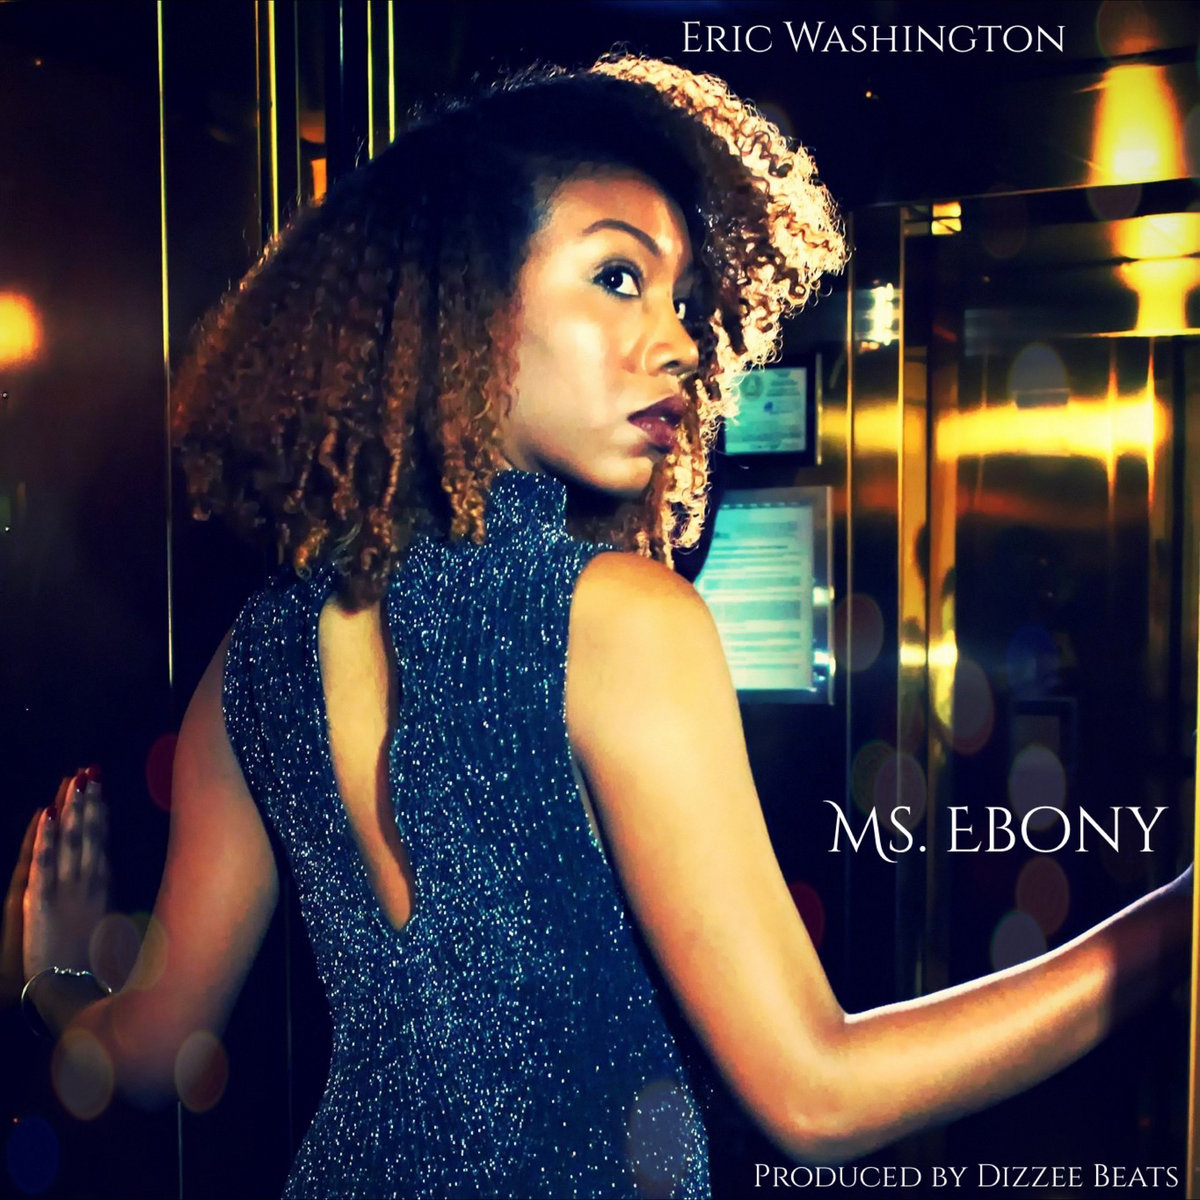 Ms. Ebony - Single by Eric Washington